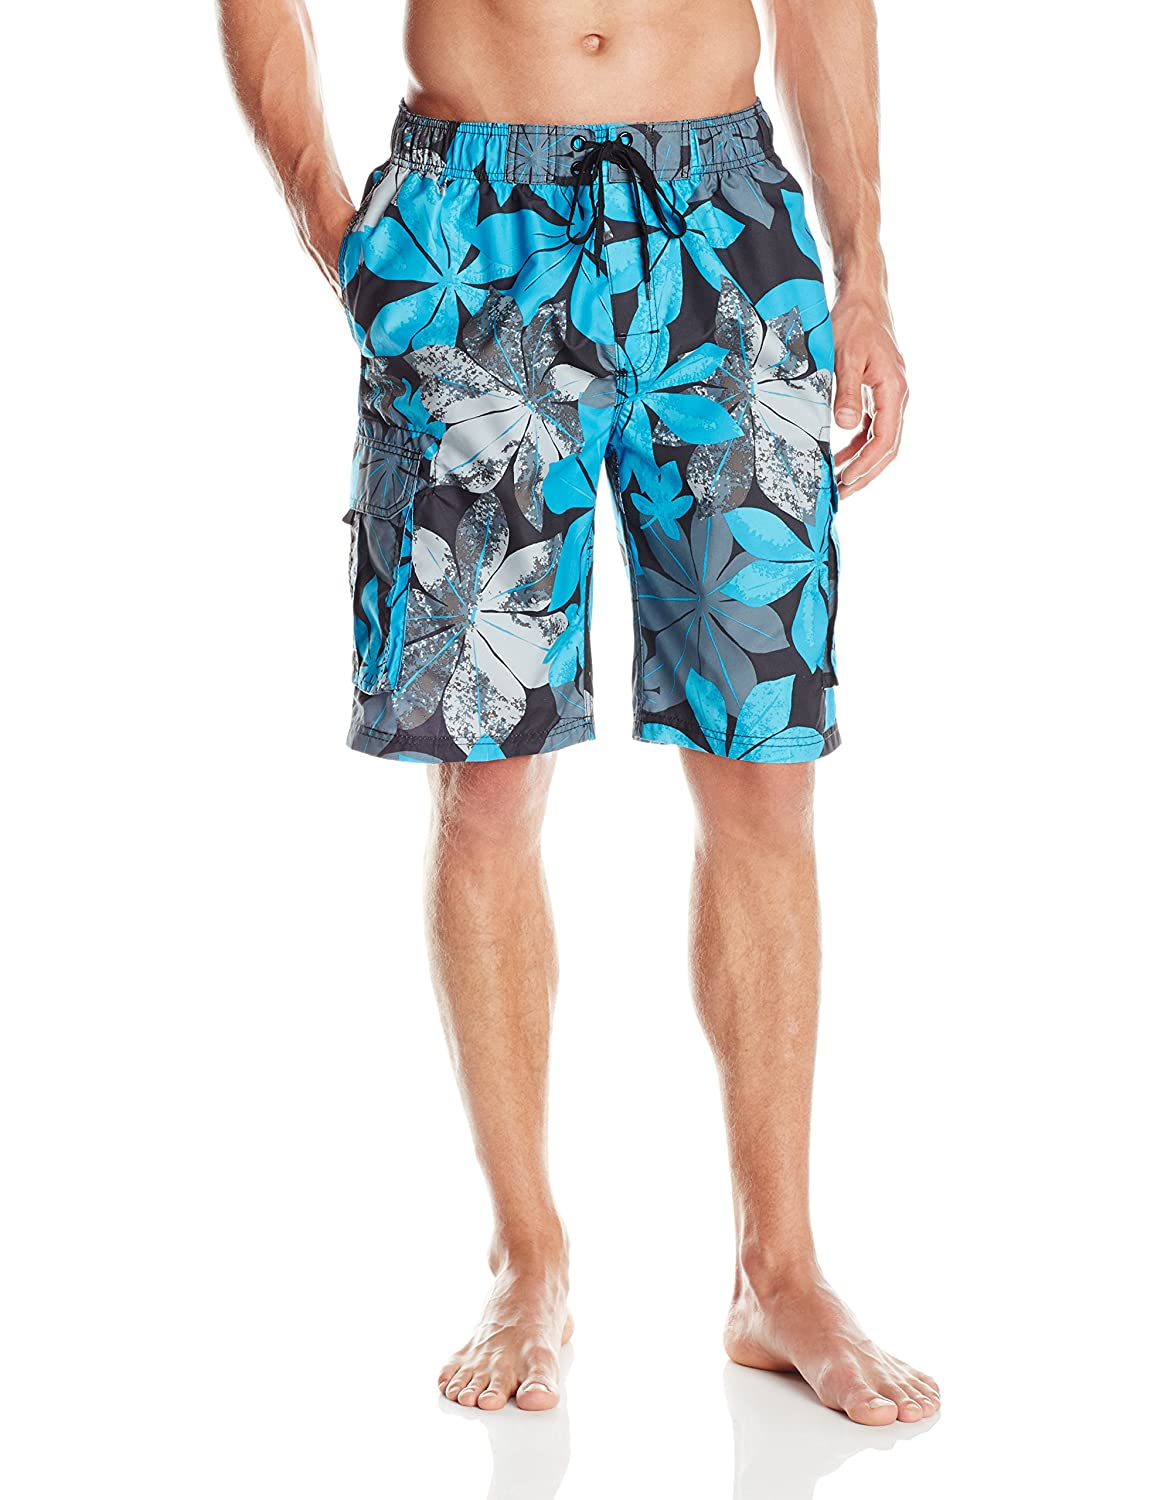 Kanu Surf Men's Quick Dry Floral Beach Board Shorts Swim Trunk Kanu Surf Men's Swimwear